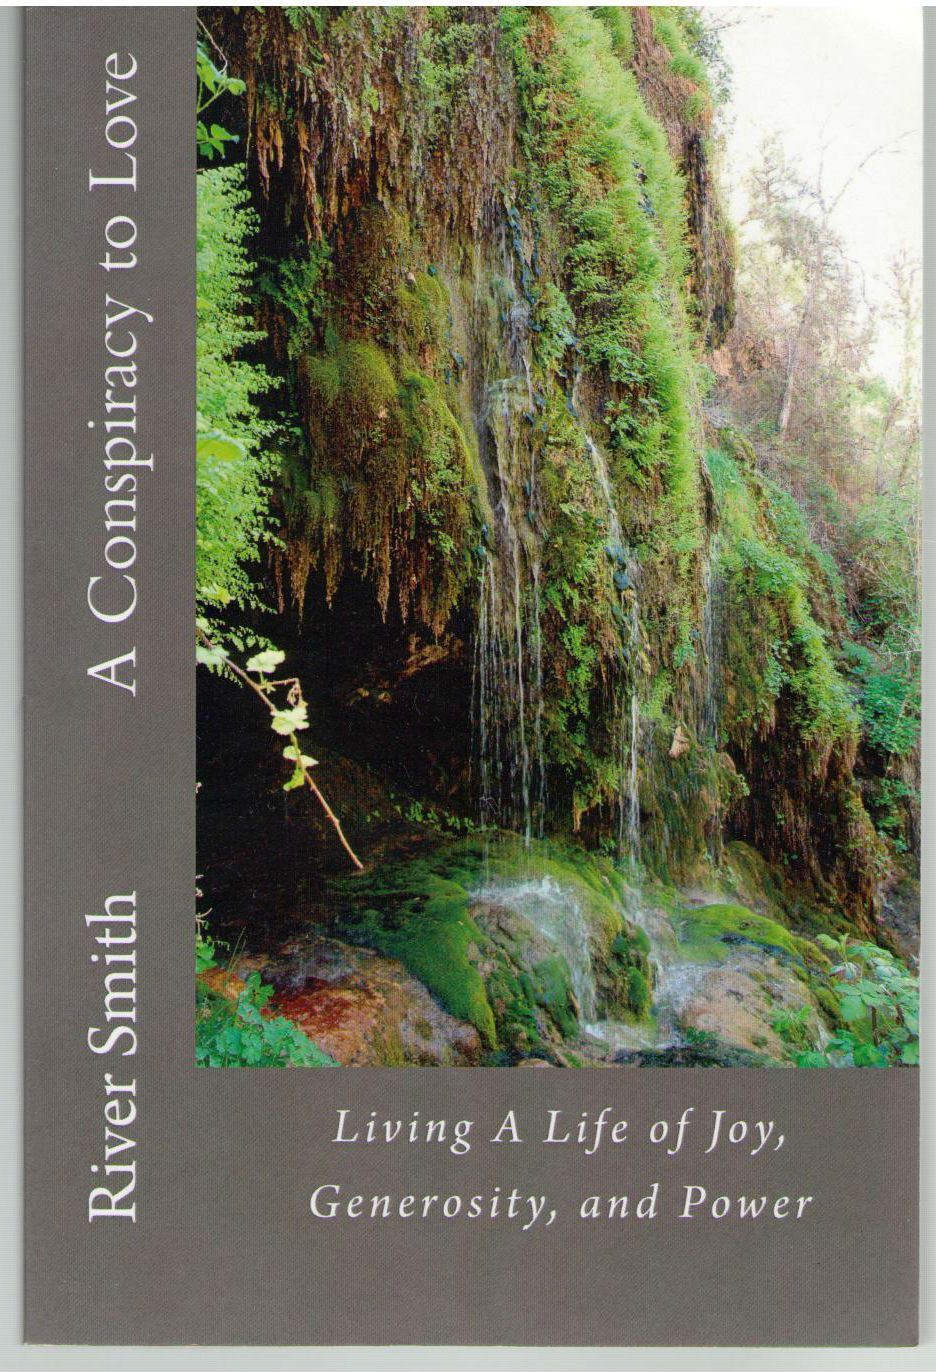 A Conspiracy to Love: Living A Life of Joy, Generosity, and Power (revised edition), Smith, River